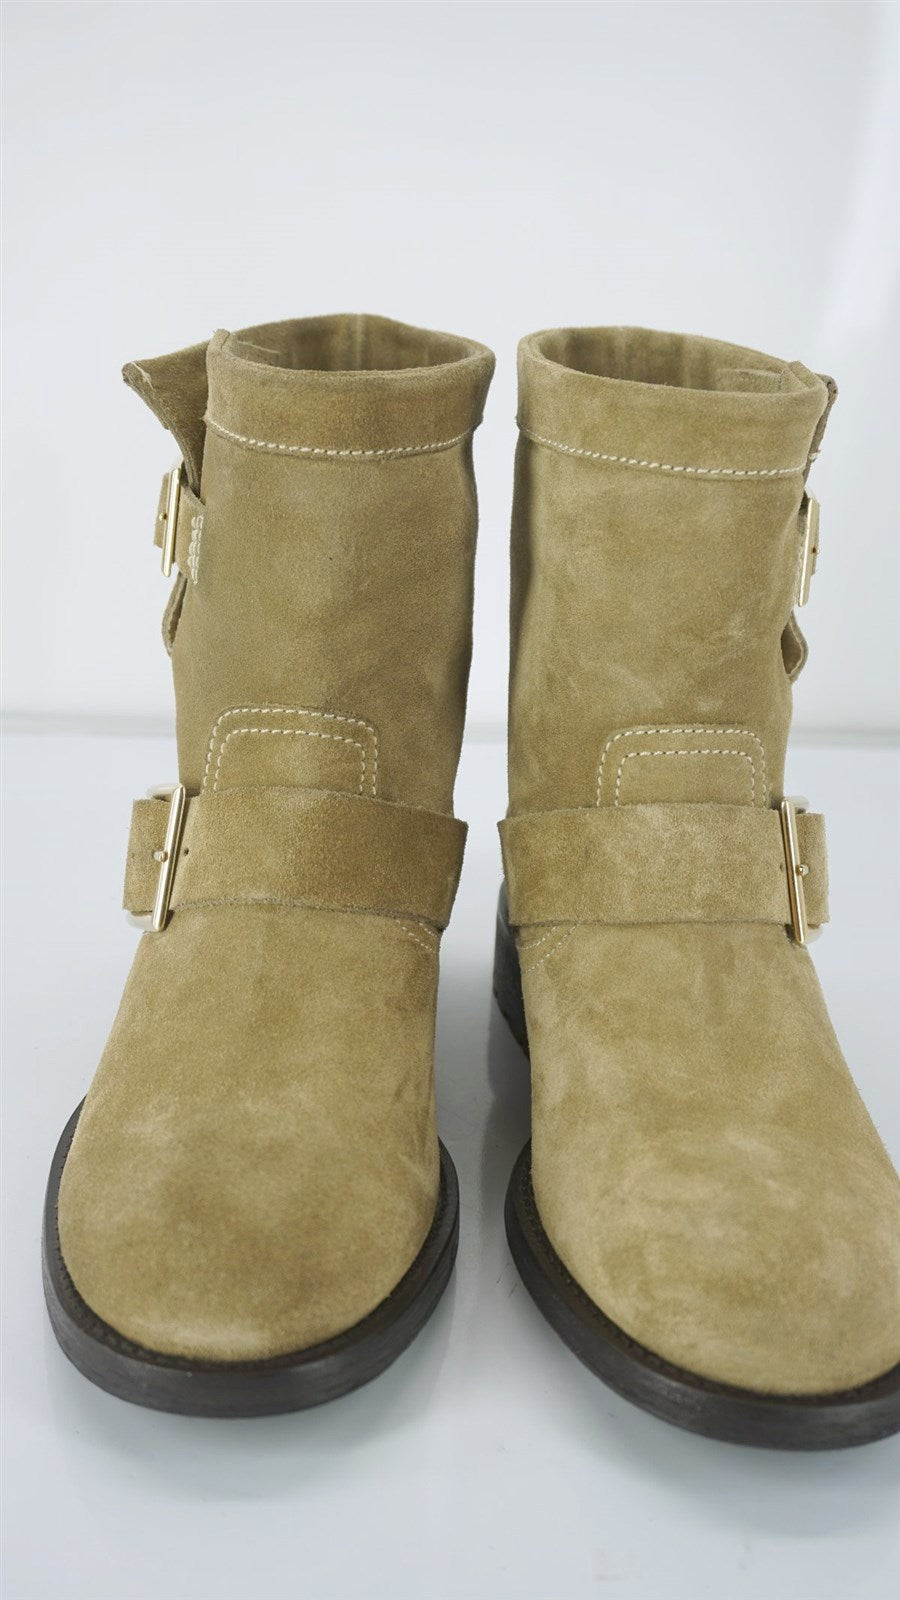 Jimmy Choo Beige Suede Leather Double Buckle Ankle Biker Boots SZ 35.5 New $1150